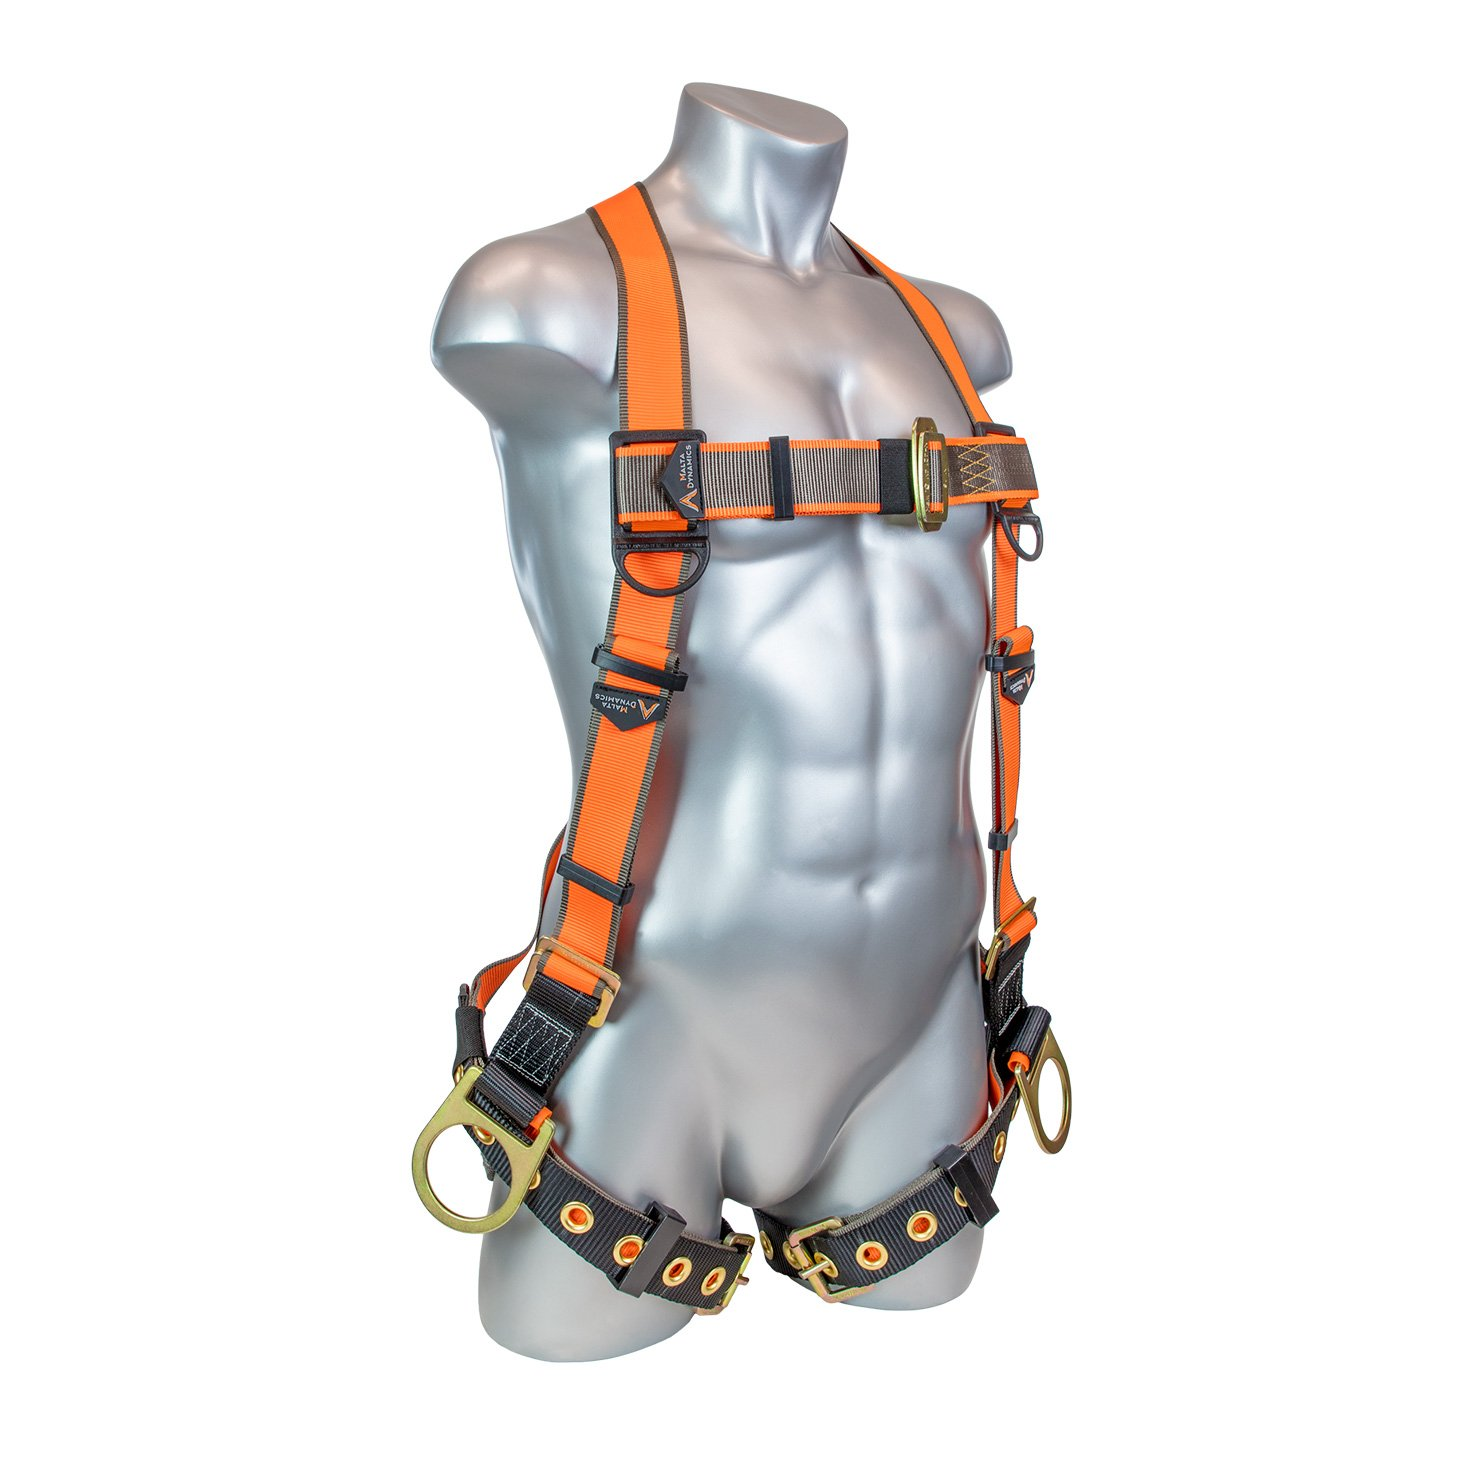 Warthog 5 – Point Full Body Universal Harness with Side D-Rings and Tongue Buckle Legs (S-M-L)